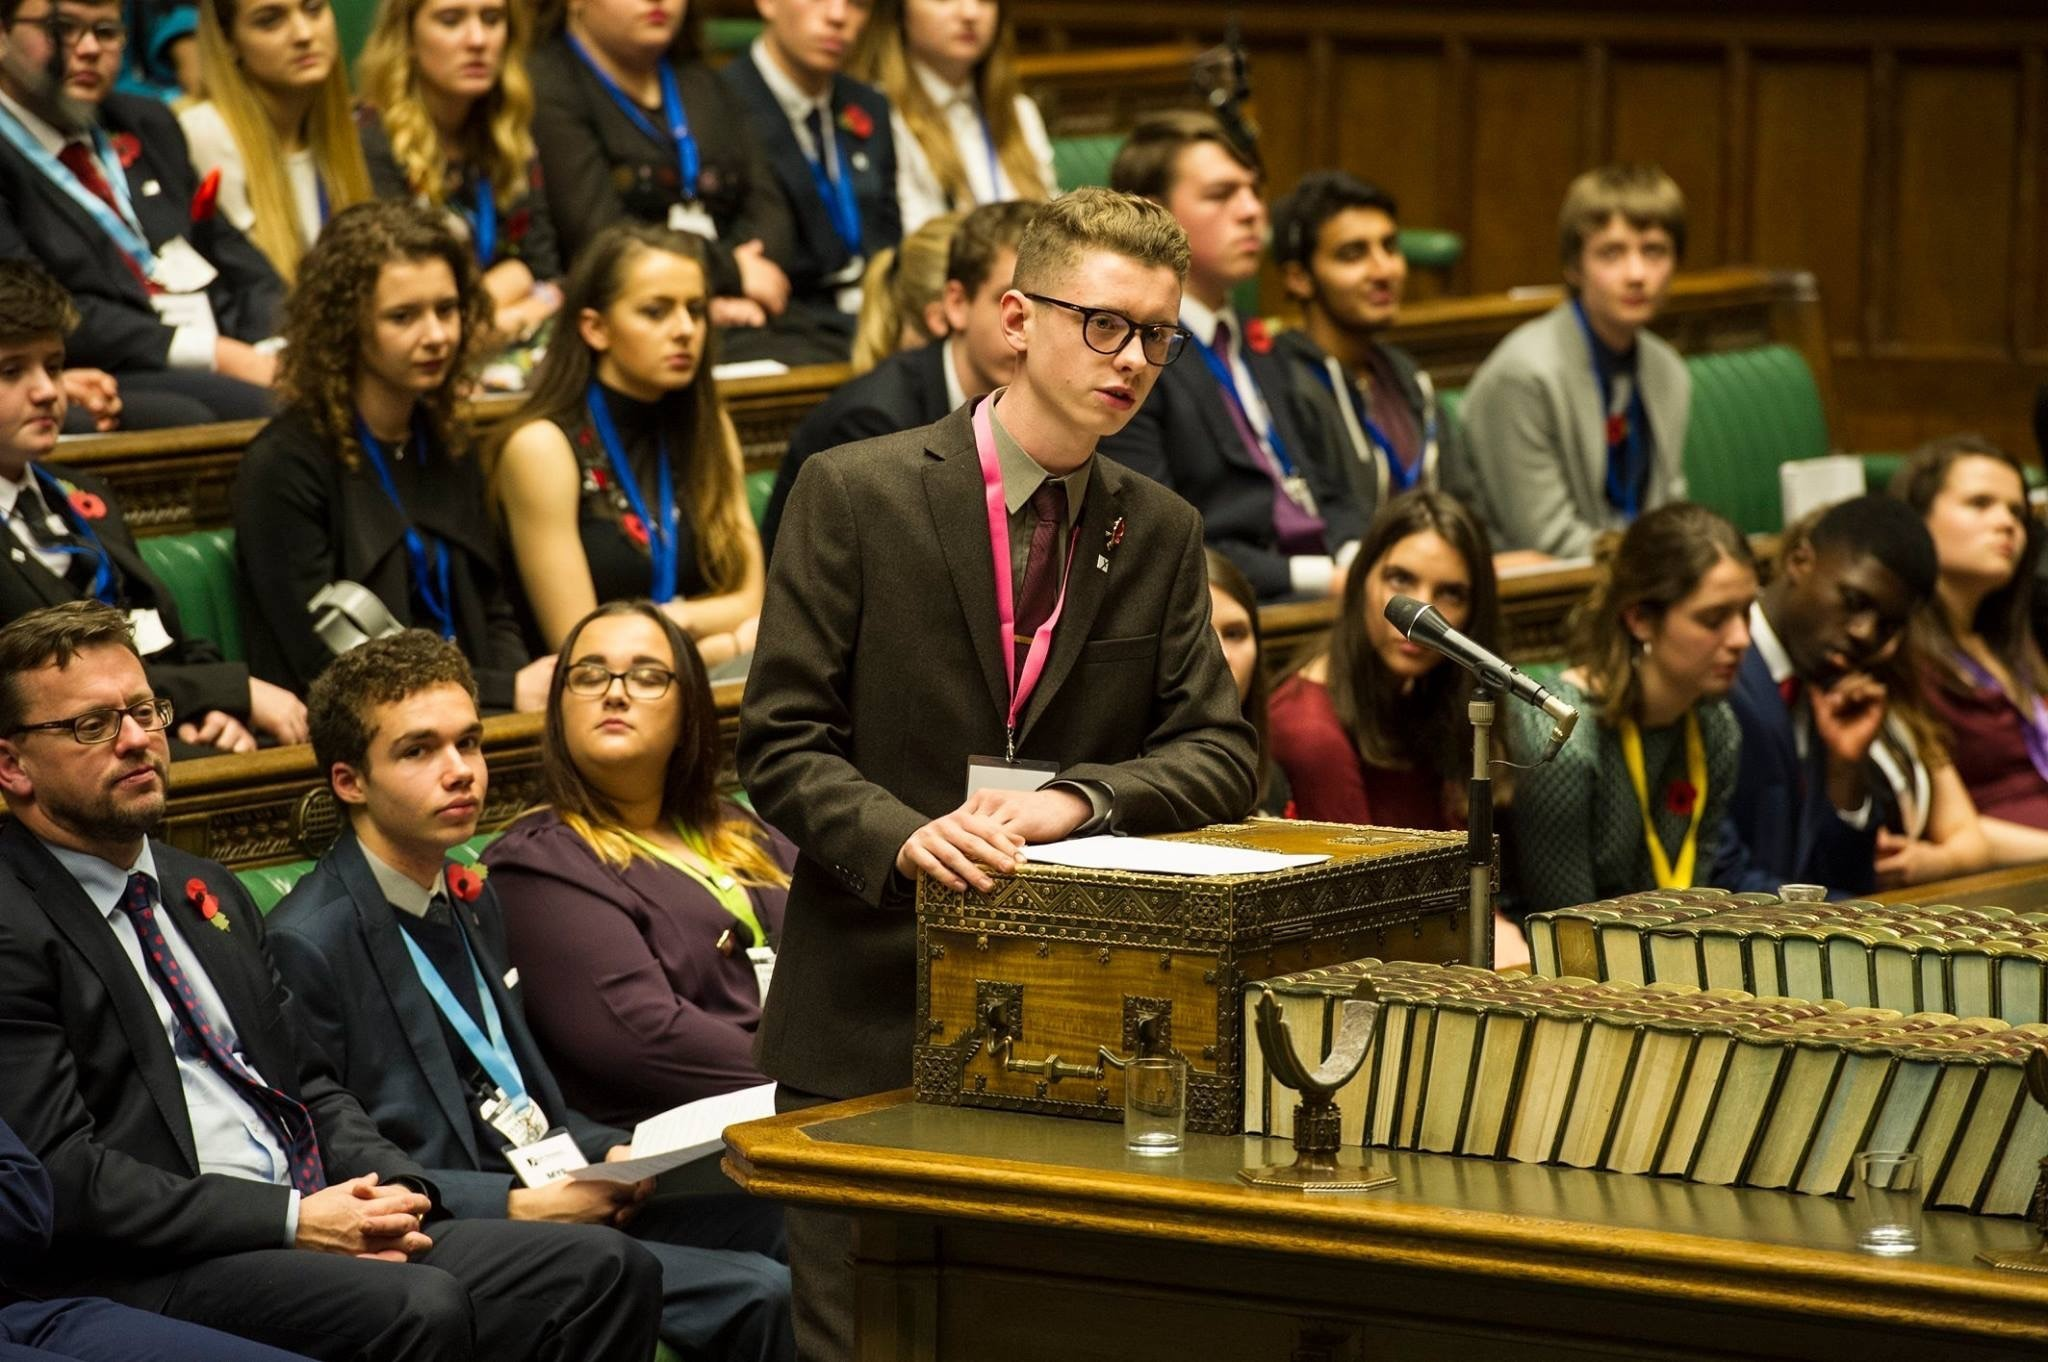 Stourbridge teenager Connor Hill speaking at the annual televised UK Youth Parliament debate in the House of Commons. Photo: Connor Hill